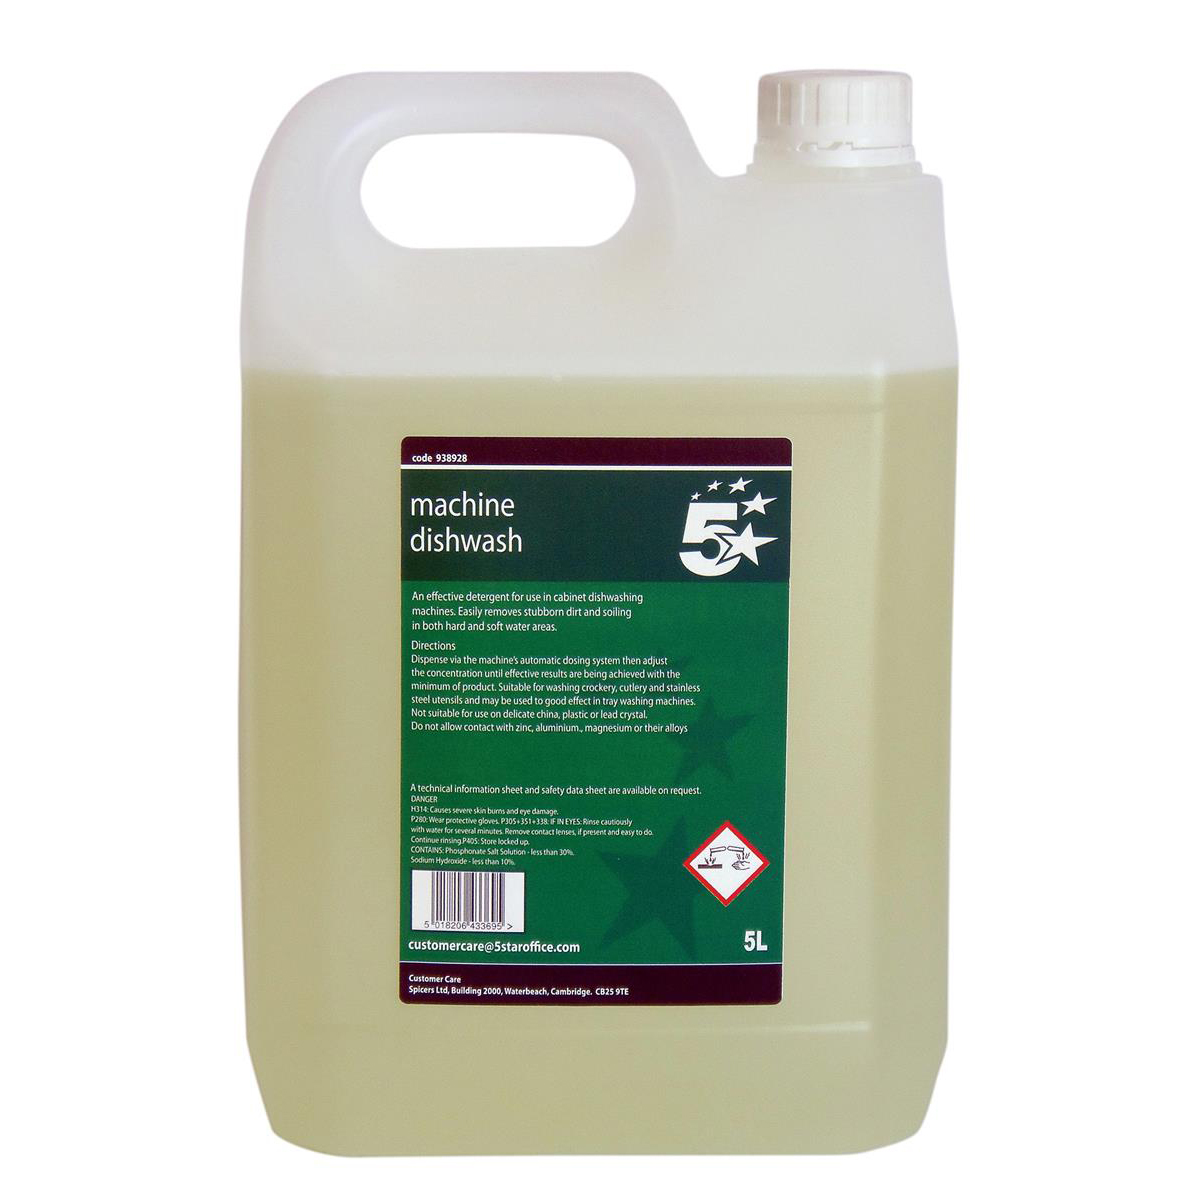 Cleaning Chemicals 5 Star Facilities Machine Dishwash Liquid Detergent 5 Litres